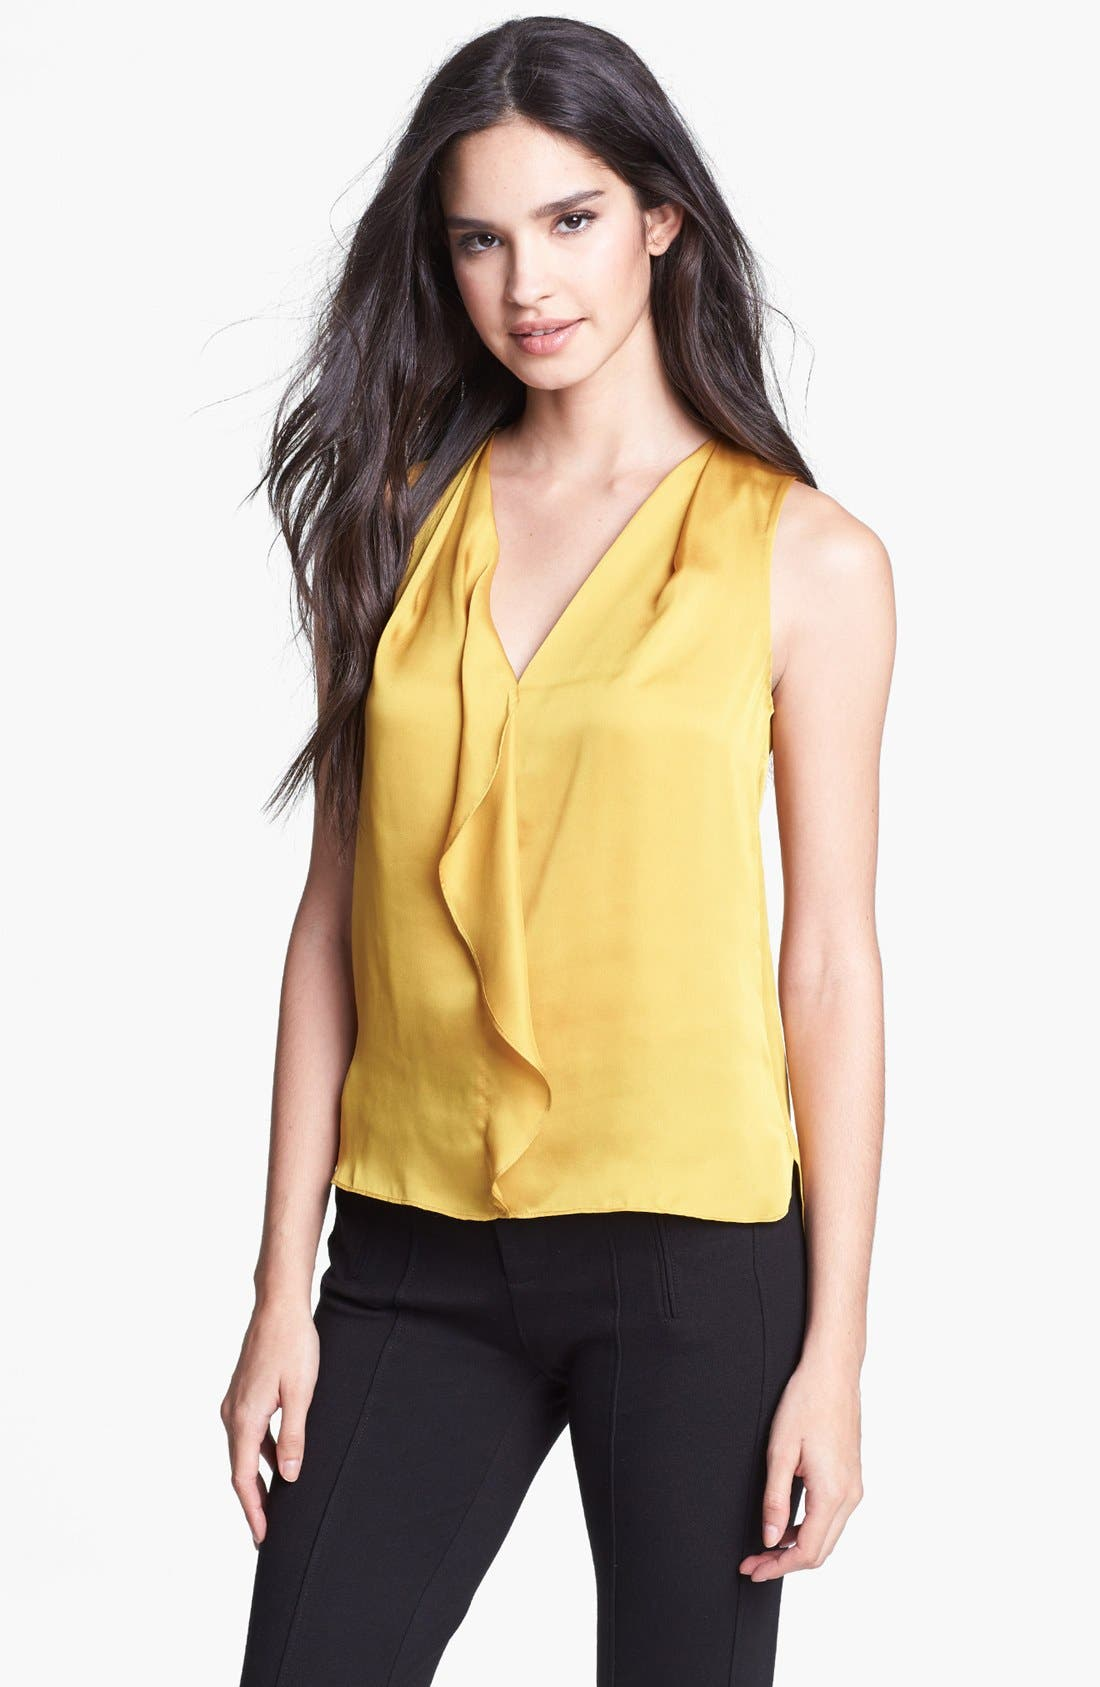 Alternate Image 1 Selected - Kenneth Cole New York 'Hester' Ruffle Blouse (Petite)